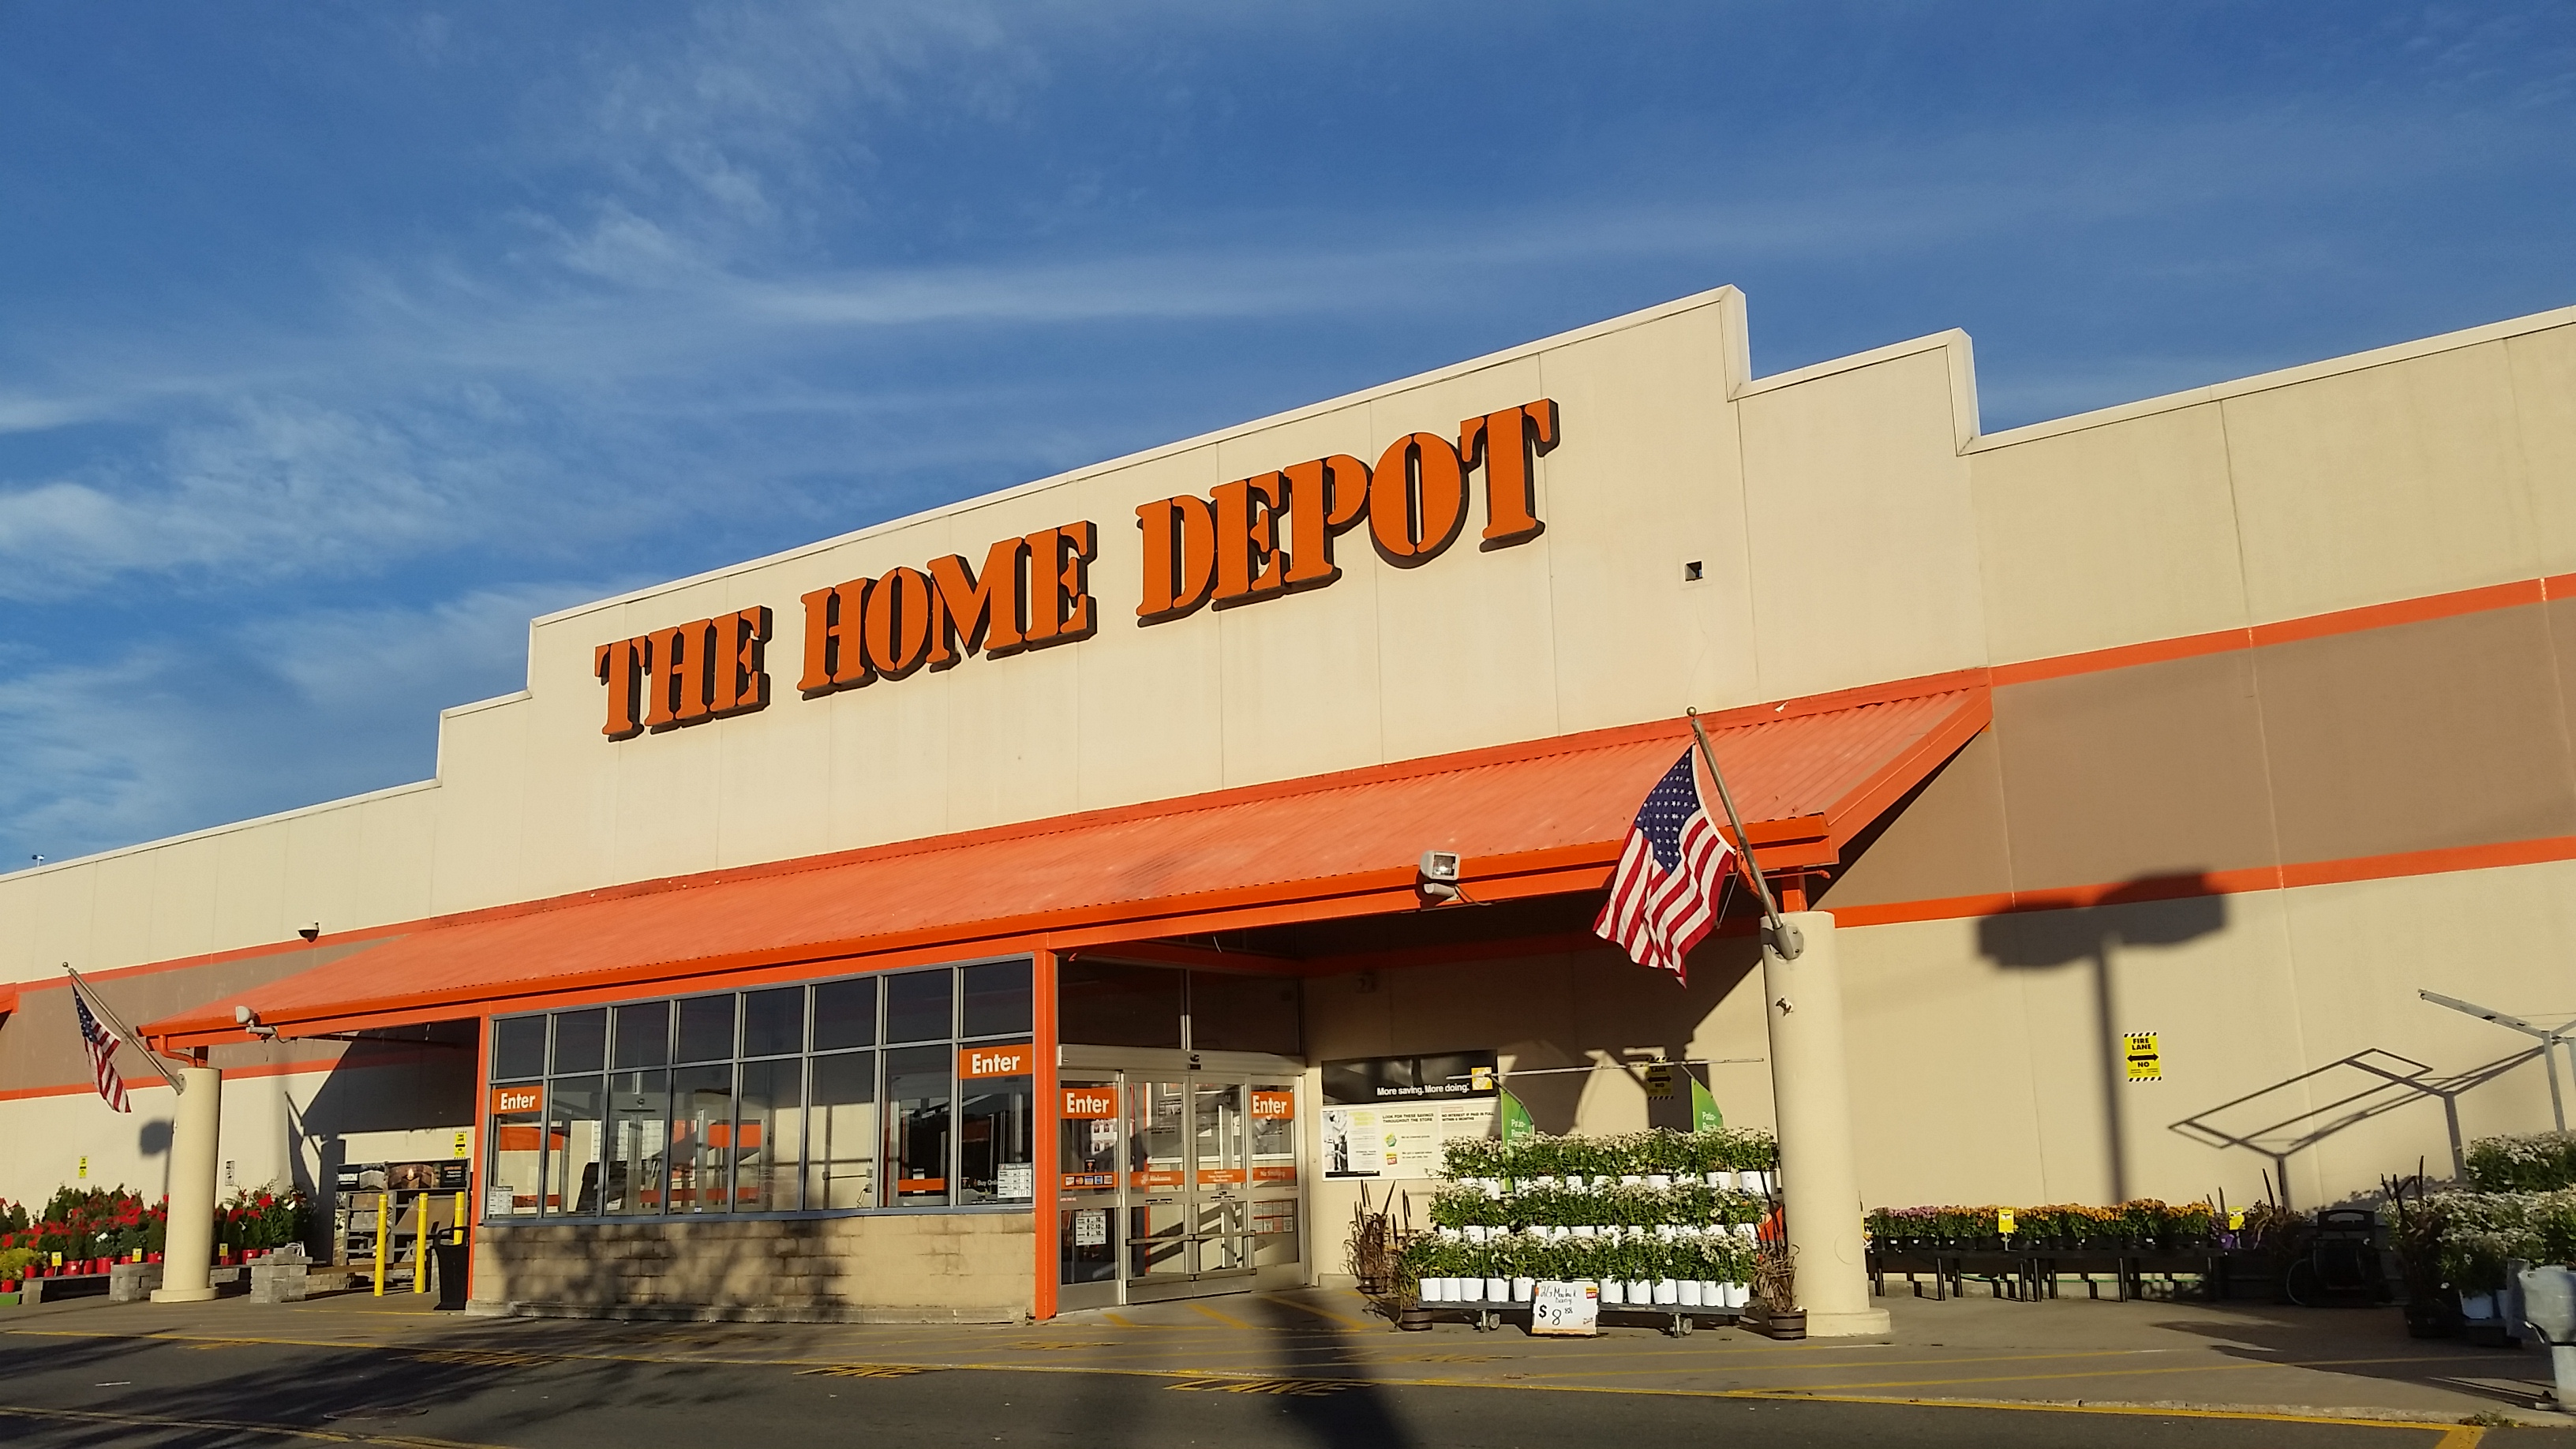 The Home Depot Lodi New Jersey Nj Localdatabase Com